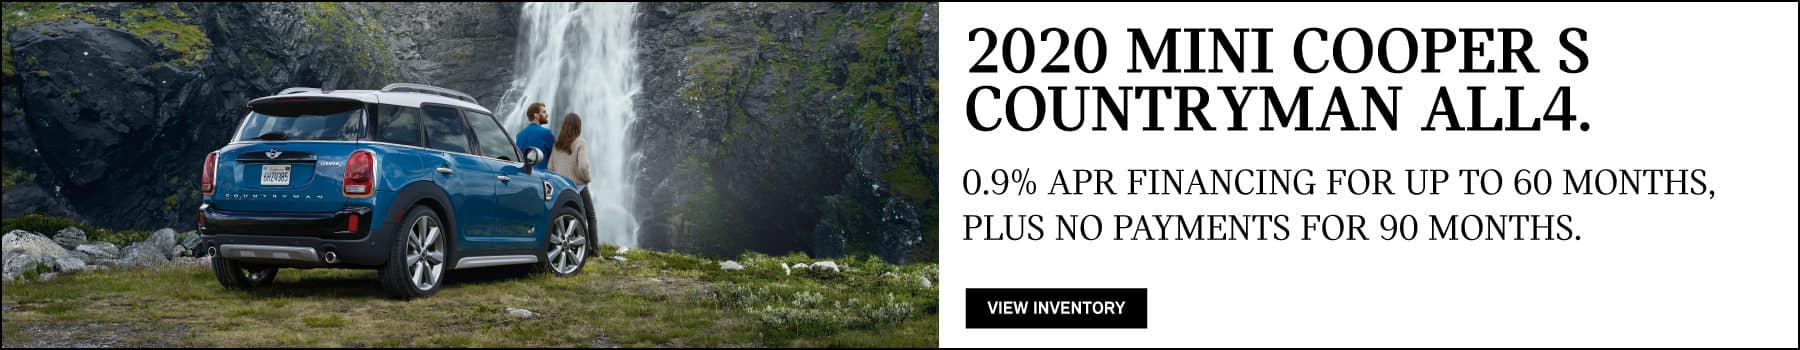 2020 MINI COOPER S COUNTRYMAN ALL4. 0.9% APR financing for up to 60 months plus no payments for 90 days